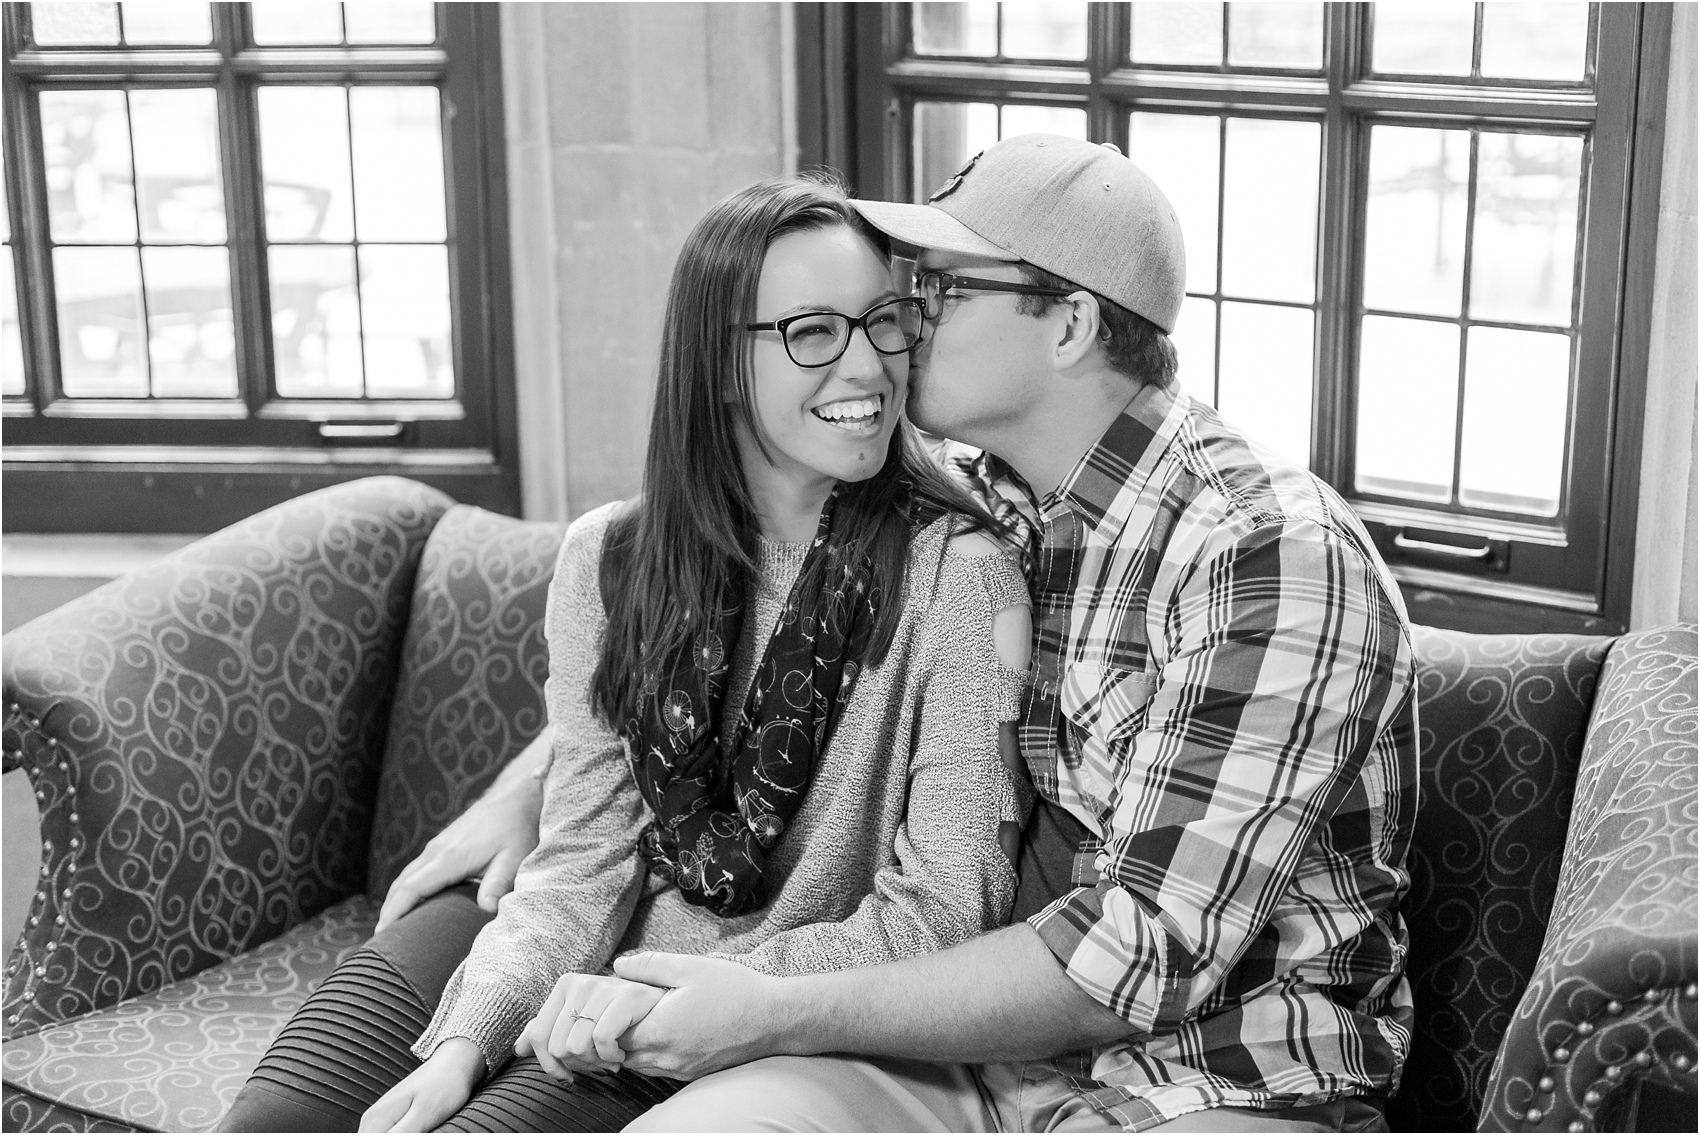 classic-fall-engagement-photos-at-the-university-of-michigan-in-ann-arbor-mi-by-courtney-carolyn-photography_0004.jpg